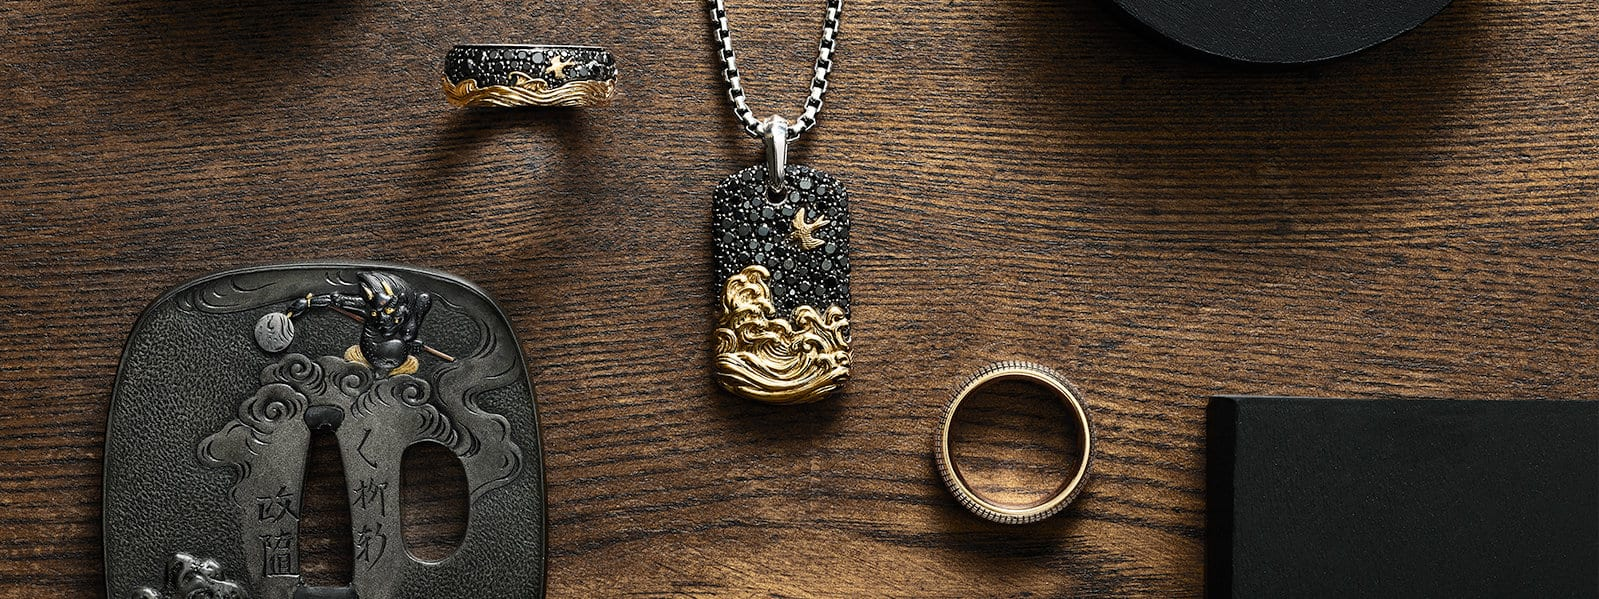 Waves band rings and a tag, along with an 18th century samurai sword tsuba, on a wood surface.